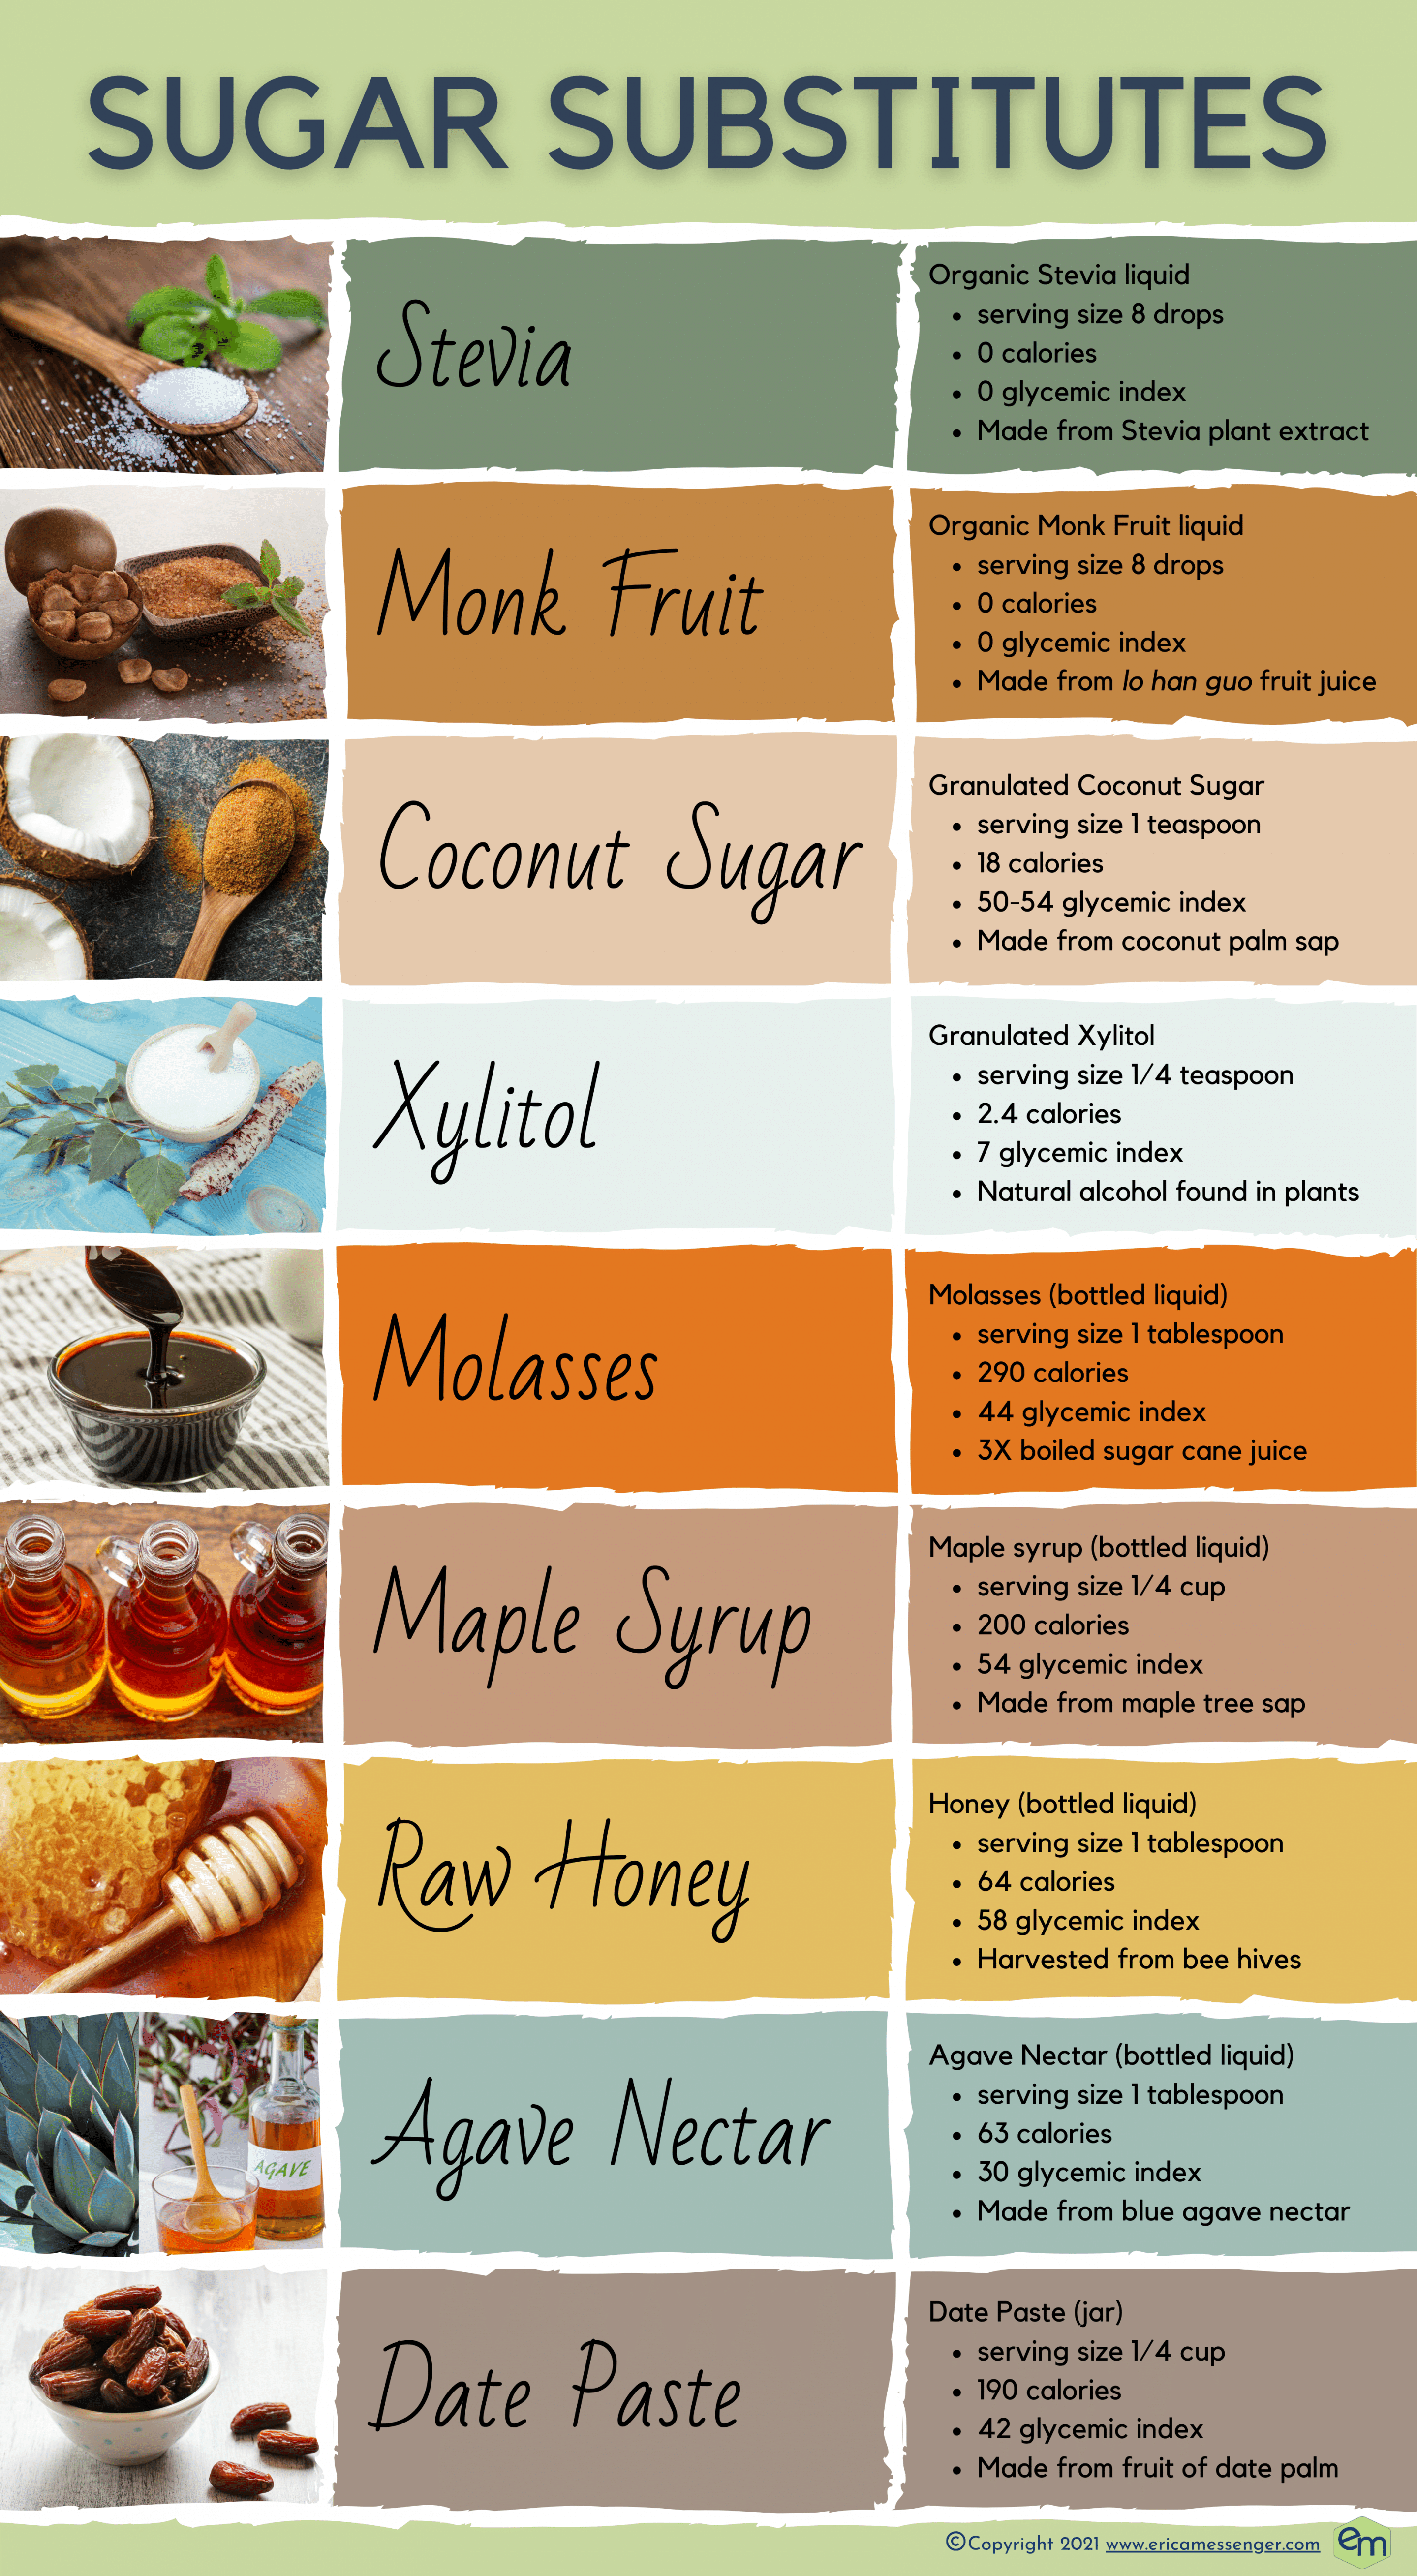 Sugar Substitute Infographic. Pictures of each sugar substitute with description of serving size, calories, glycemic index, and where it comes from. Light desert color palette.